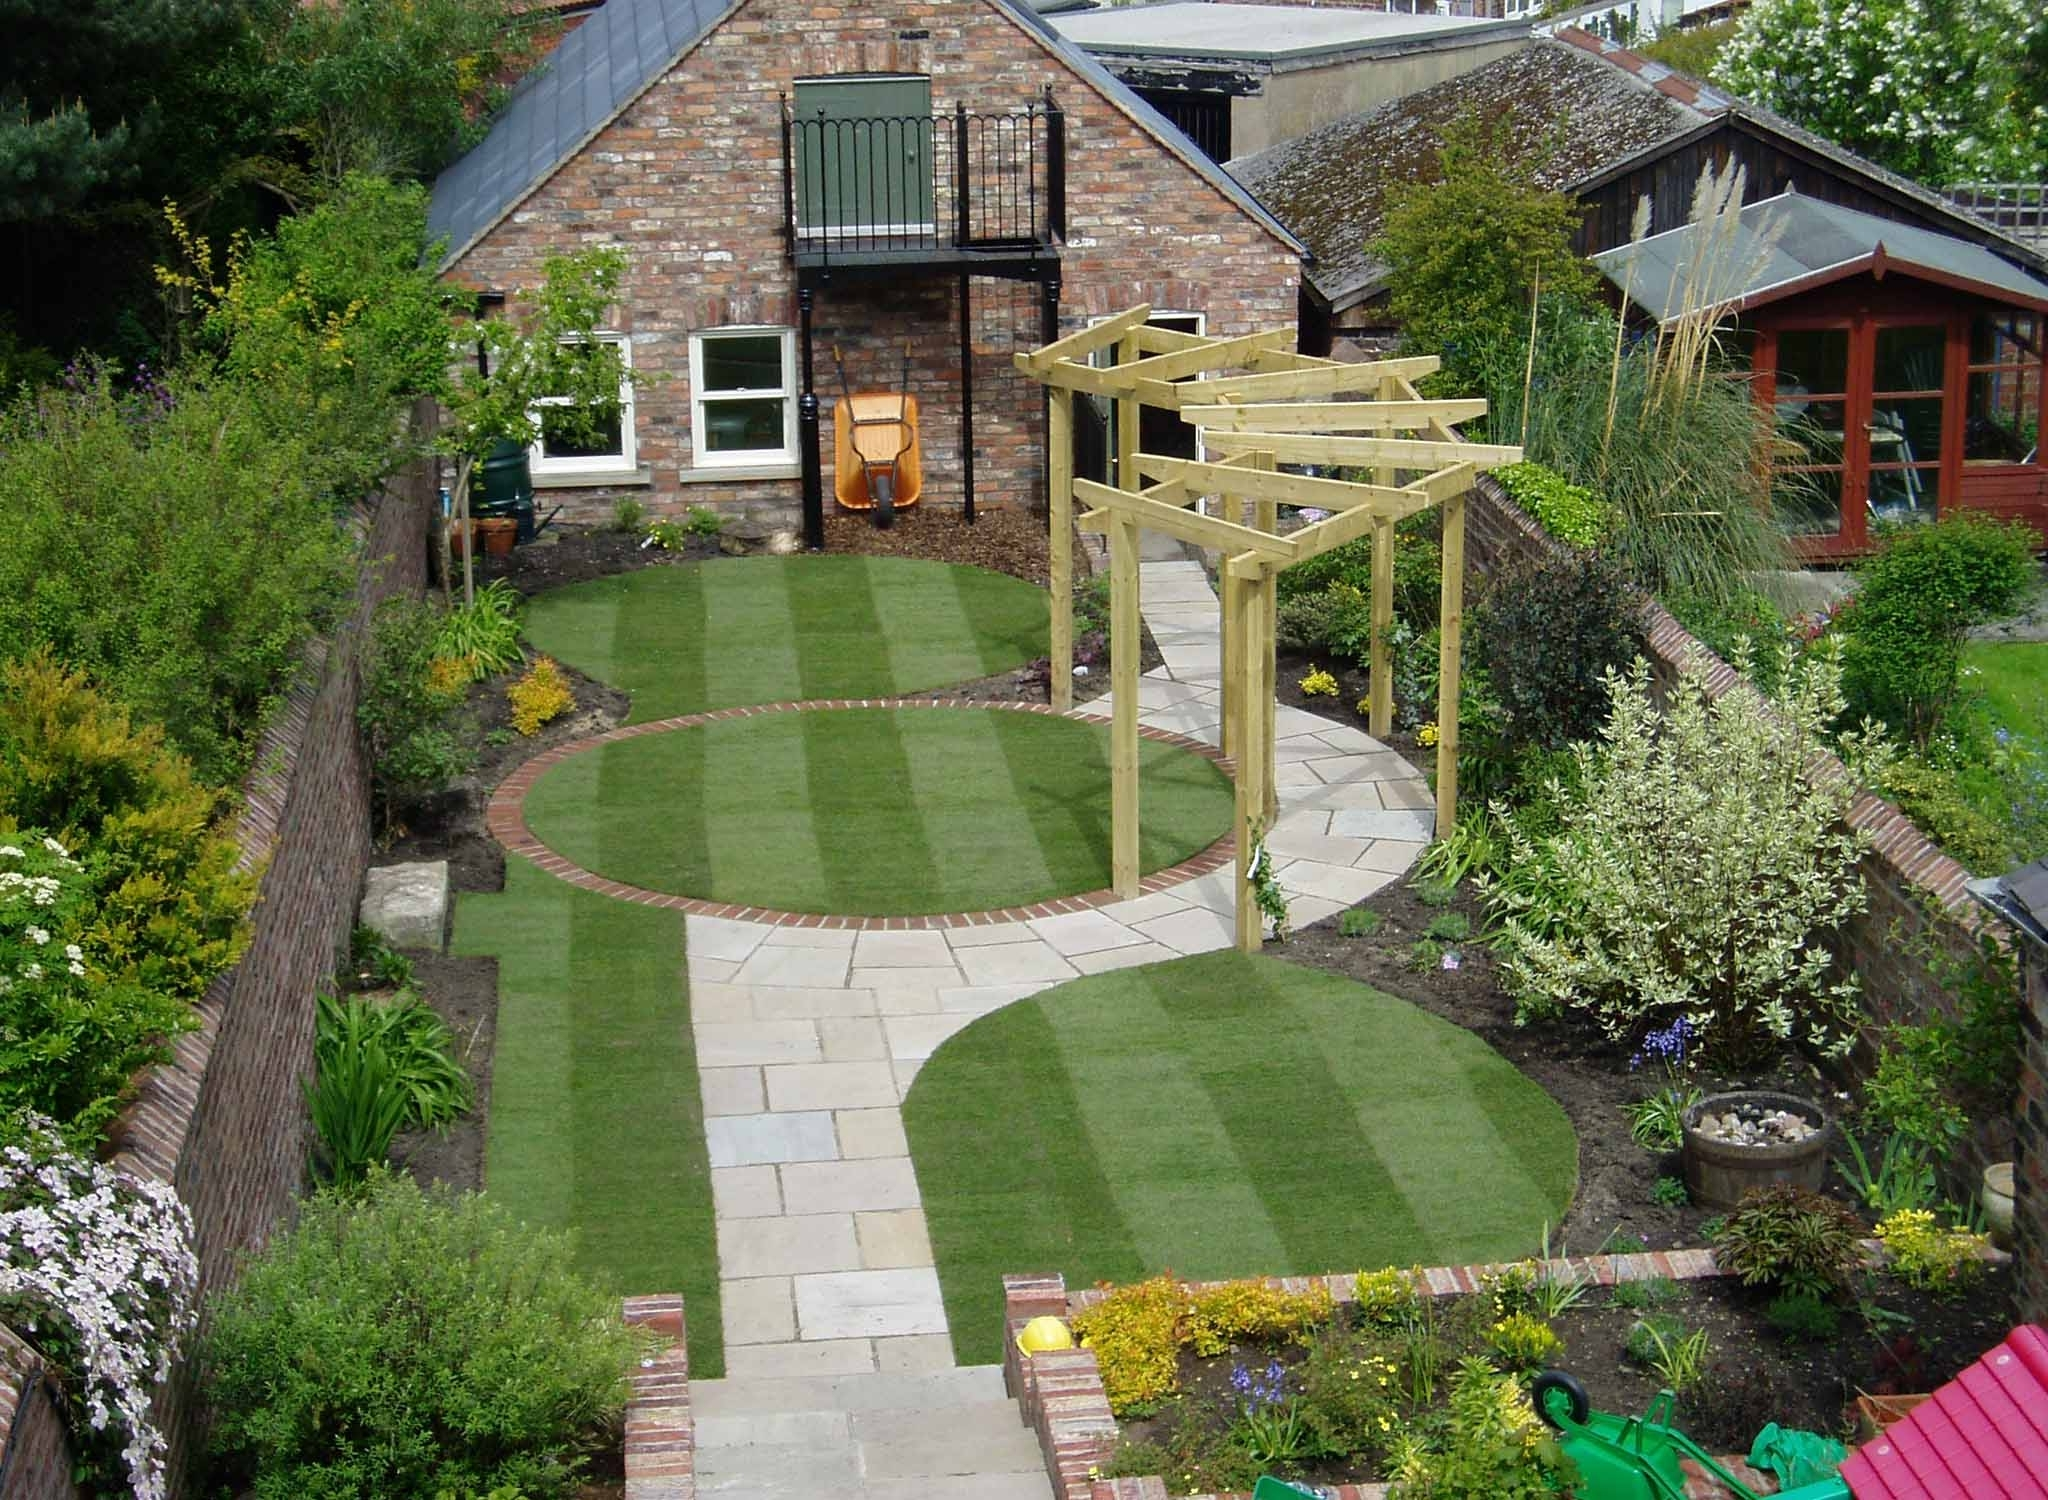 Beautiful Residential Landscape Architecture Backyard With Pergola within Best Layout For Small Garden Design Ideas Design Ideas